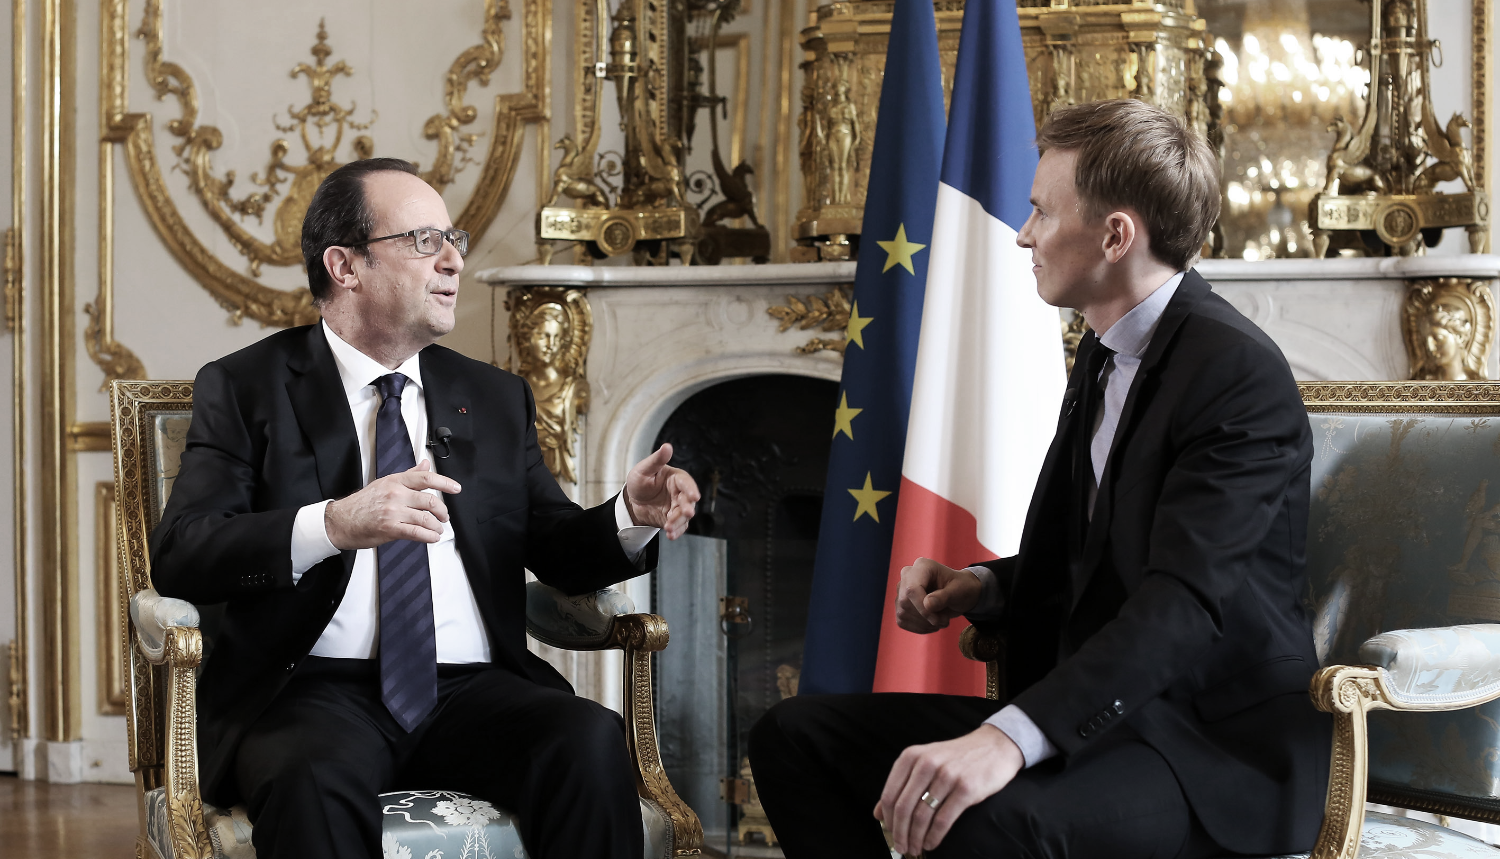 Breyer und Hollande